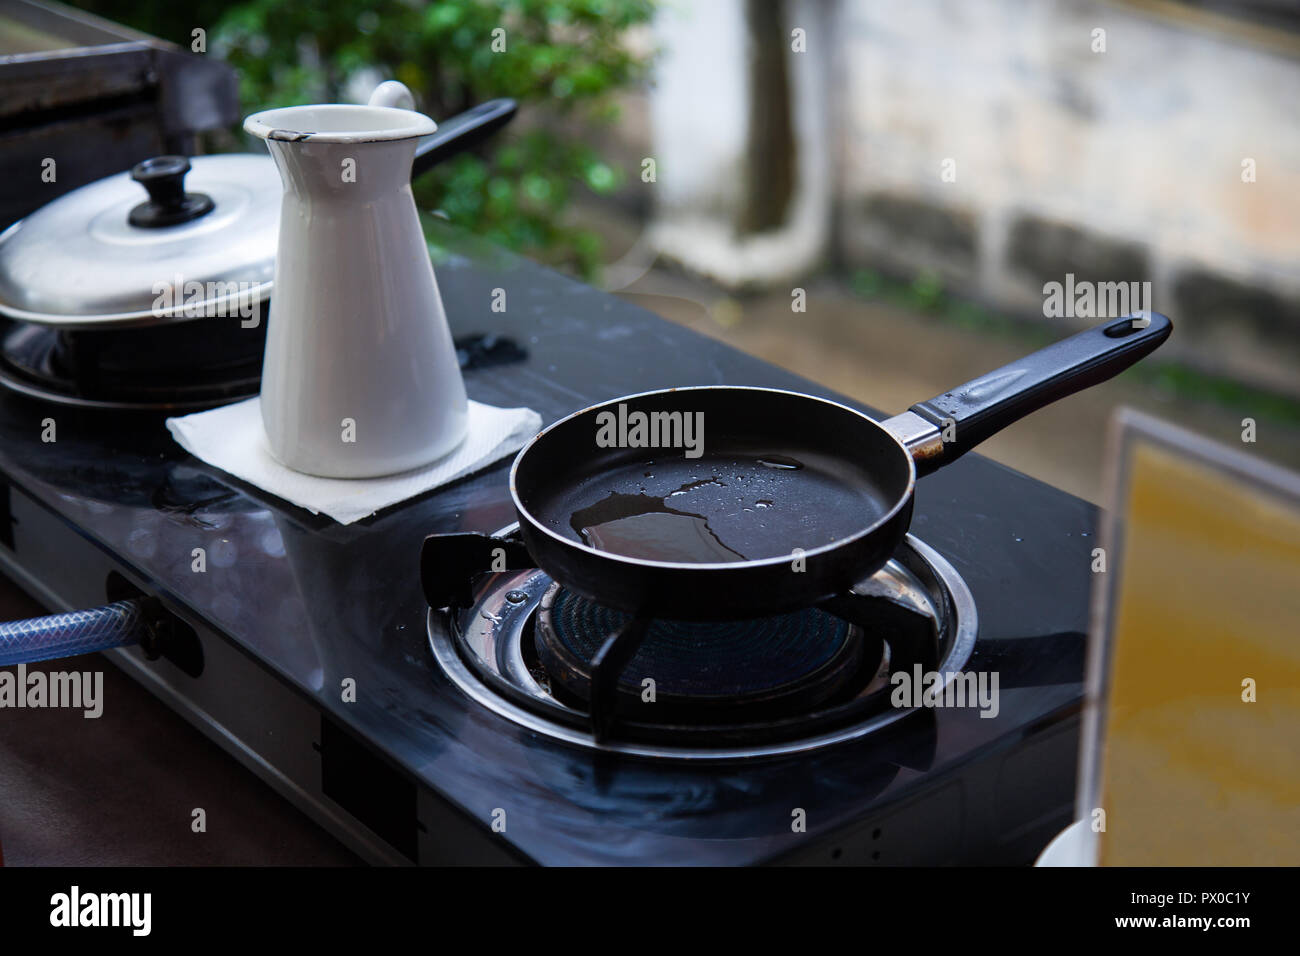 heating oil in stainless steel pan on gas fueled stove, prepared for frying breakfast or lunch food in an outdoor kitchen background. Kitchen Utensils - Stock Image